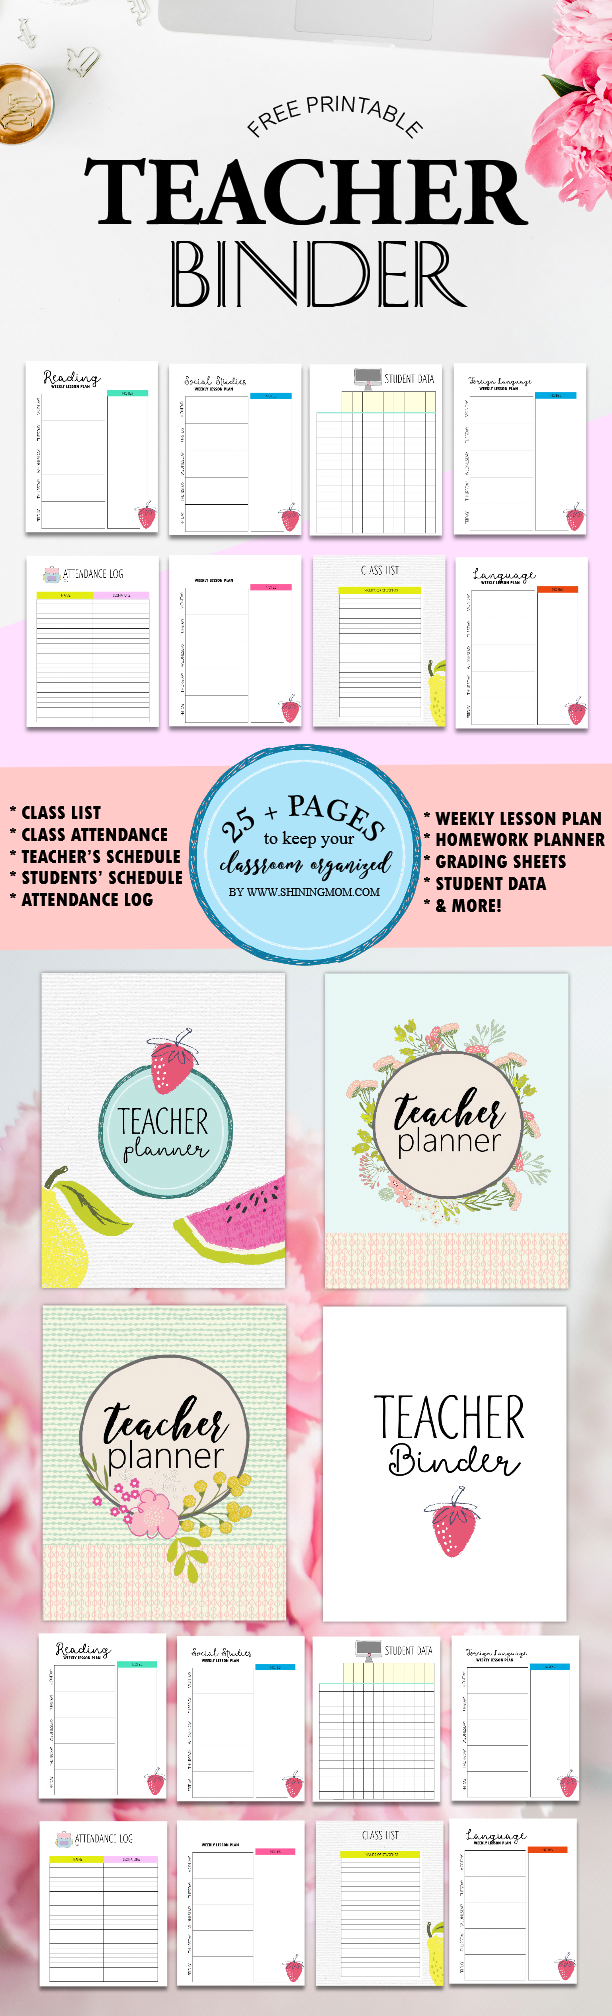 weekly teacher planner